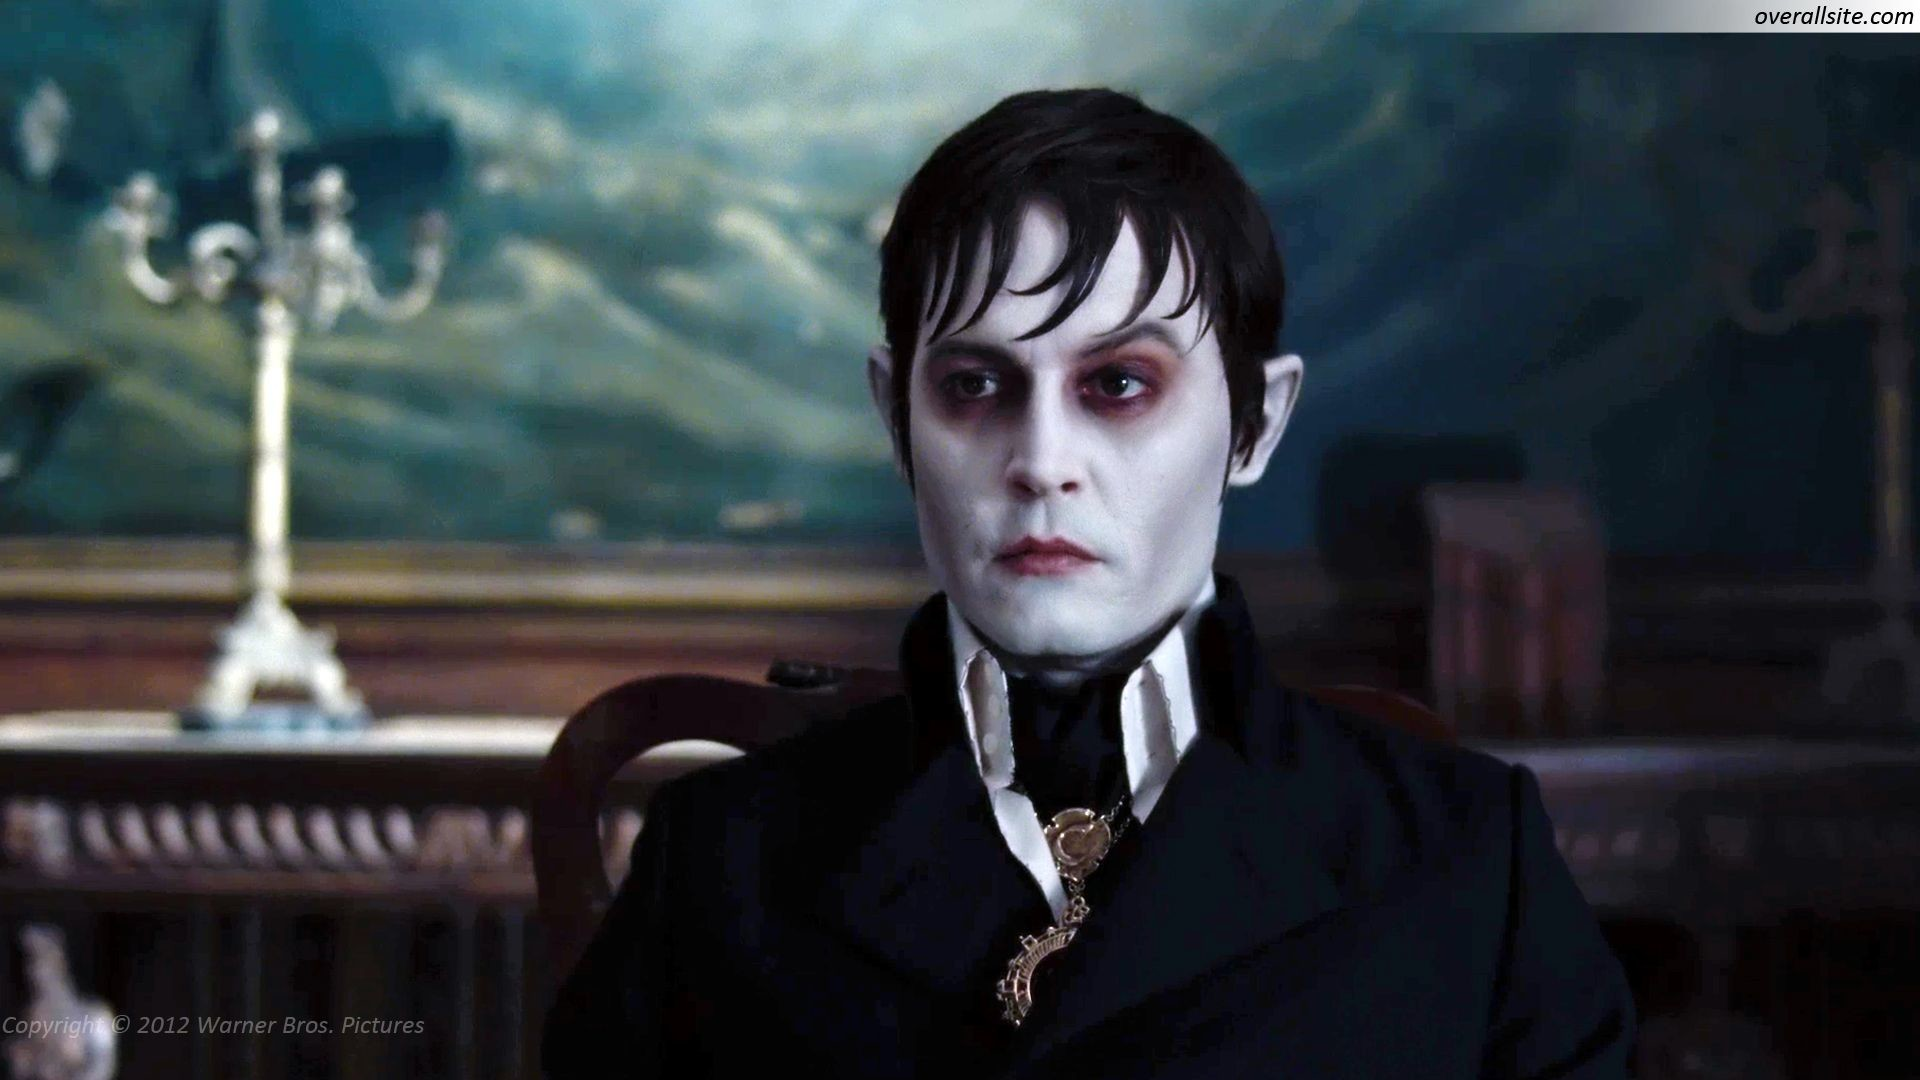 1920x1080 Dark Shadows Wallpaper HD 6 - 1920 X 1080